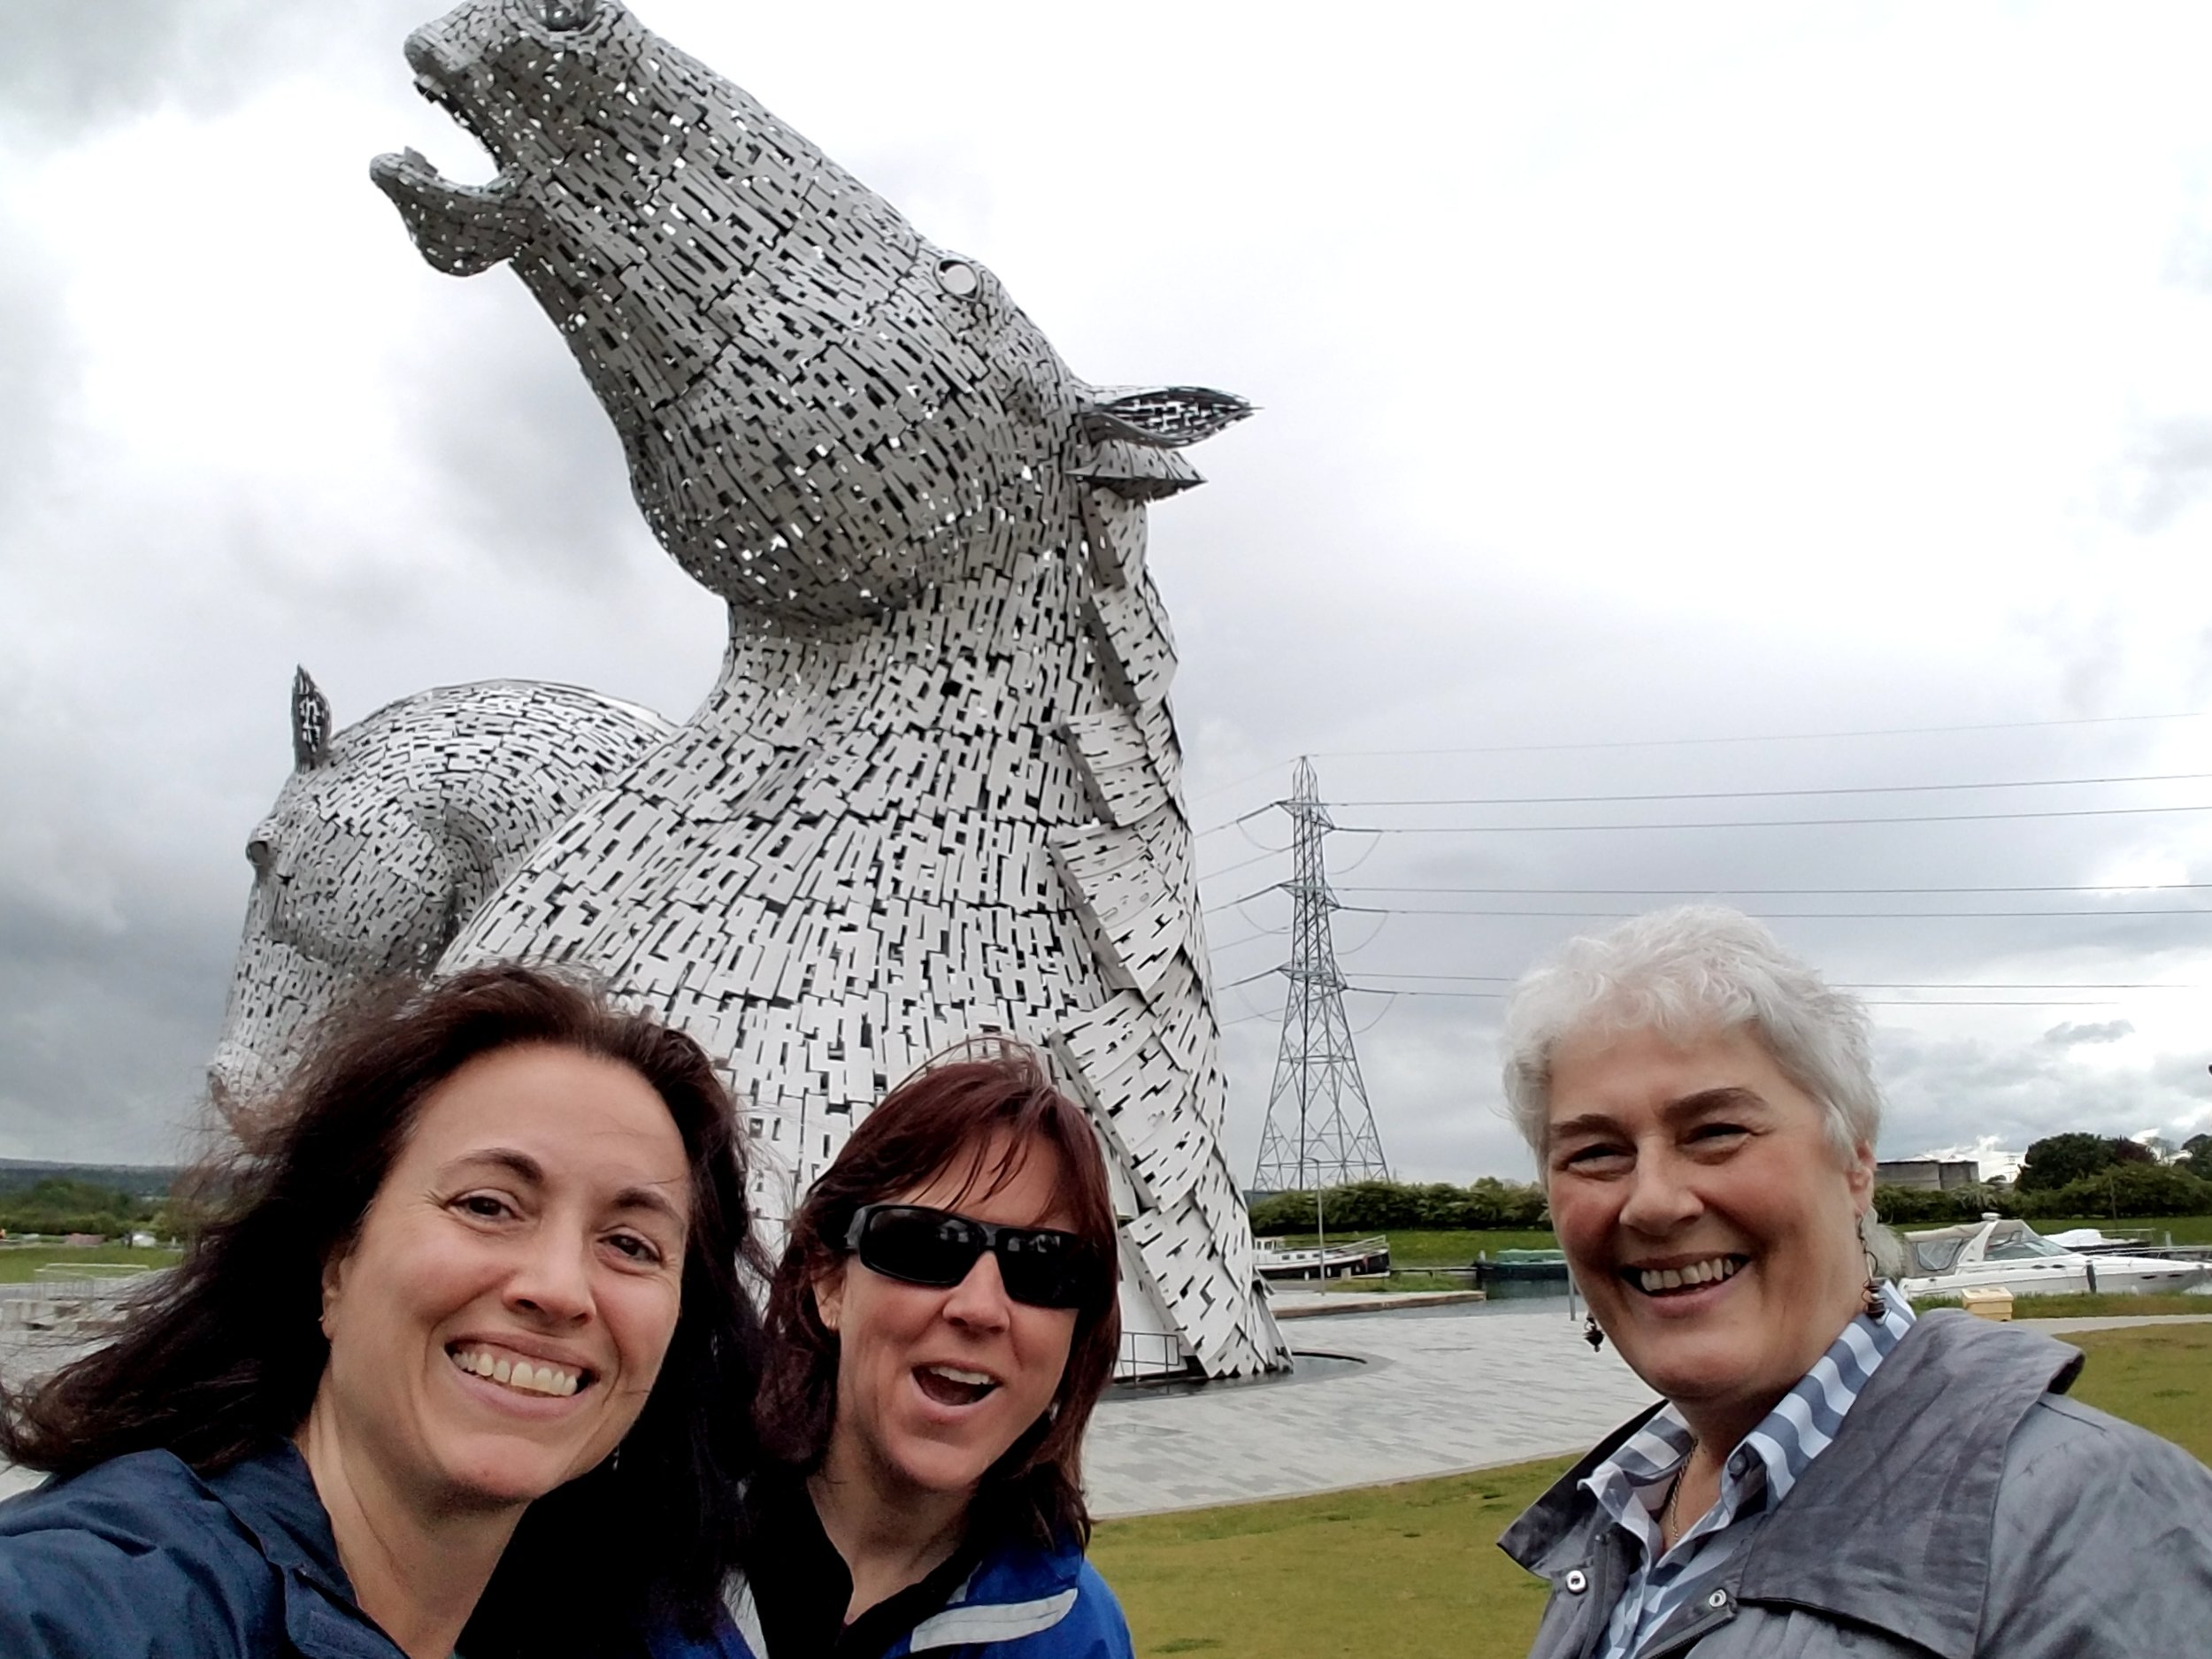 At the 100'Kelpies with Lyn